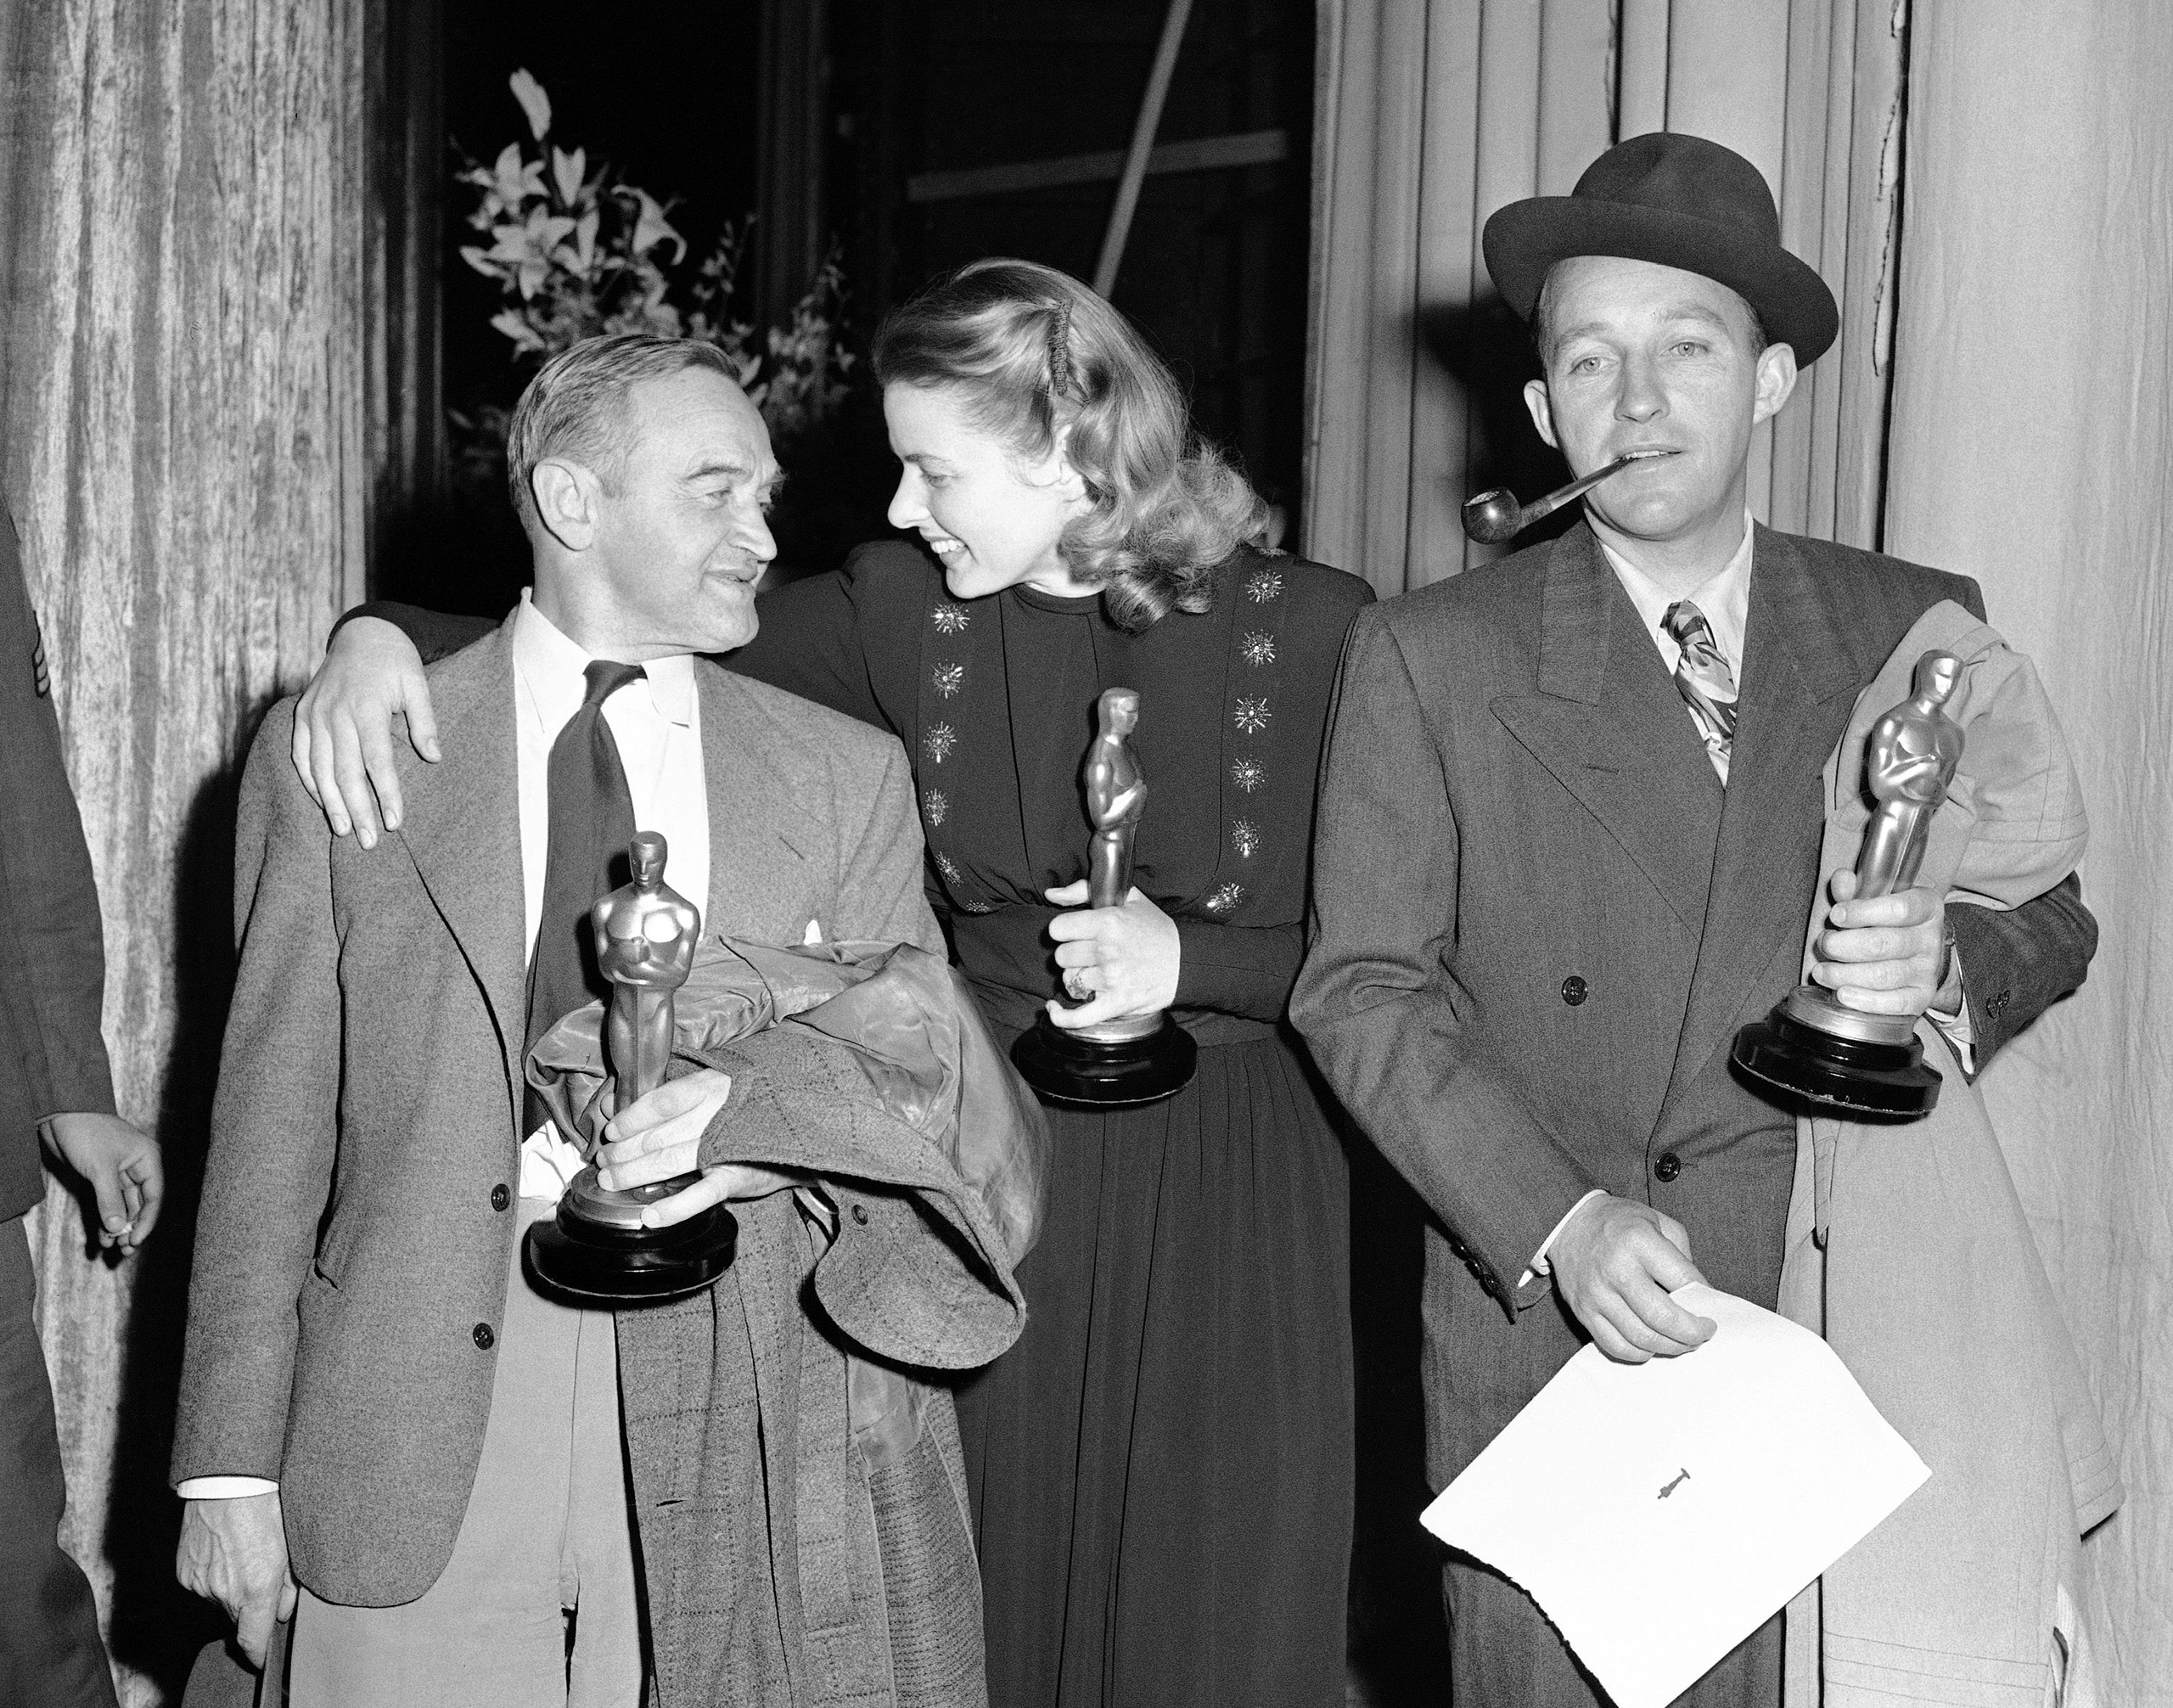 Barry Fitzgerald, Ingrid Bergman and Bing Crosby at the Academy Awards, 1945.